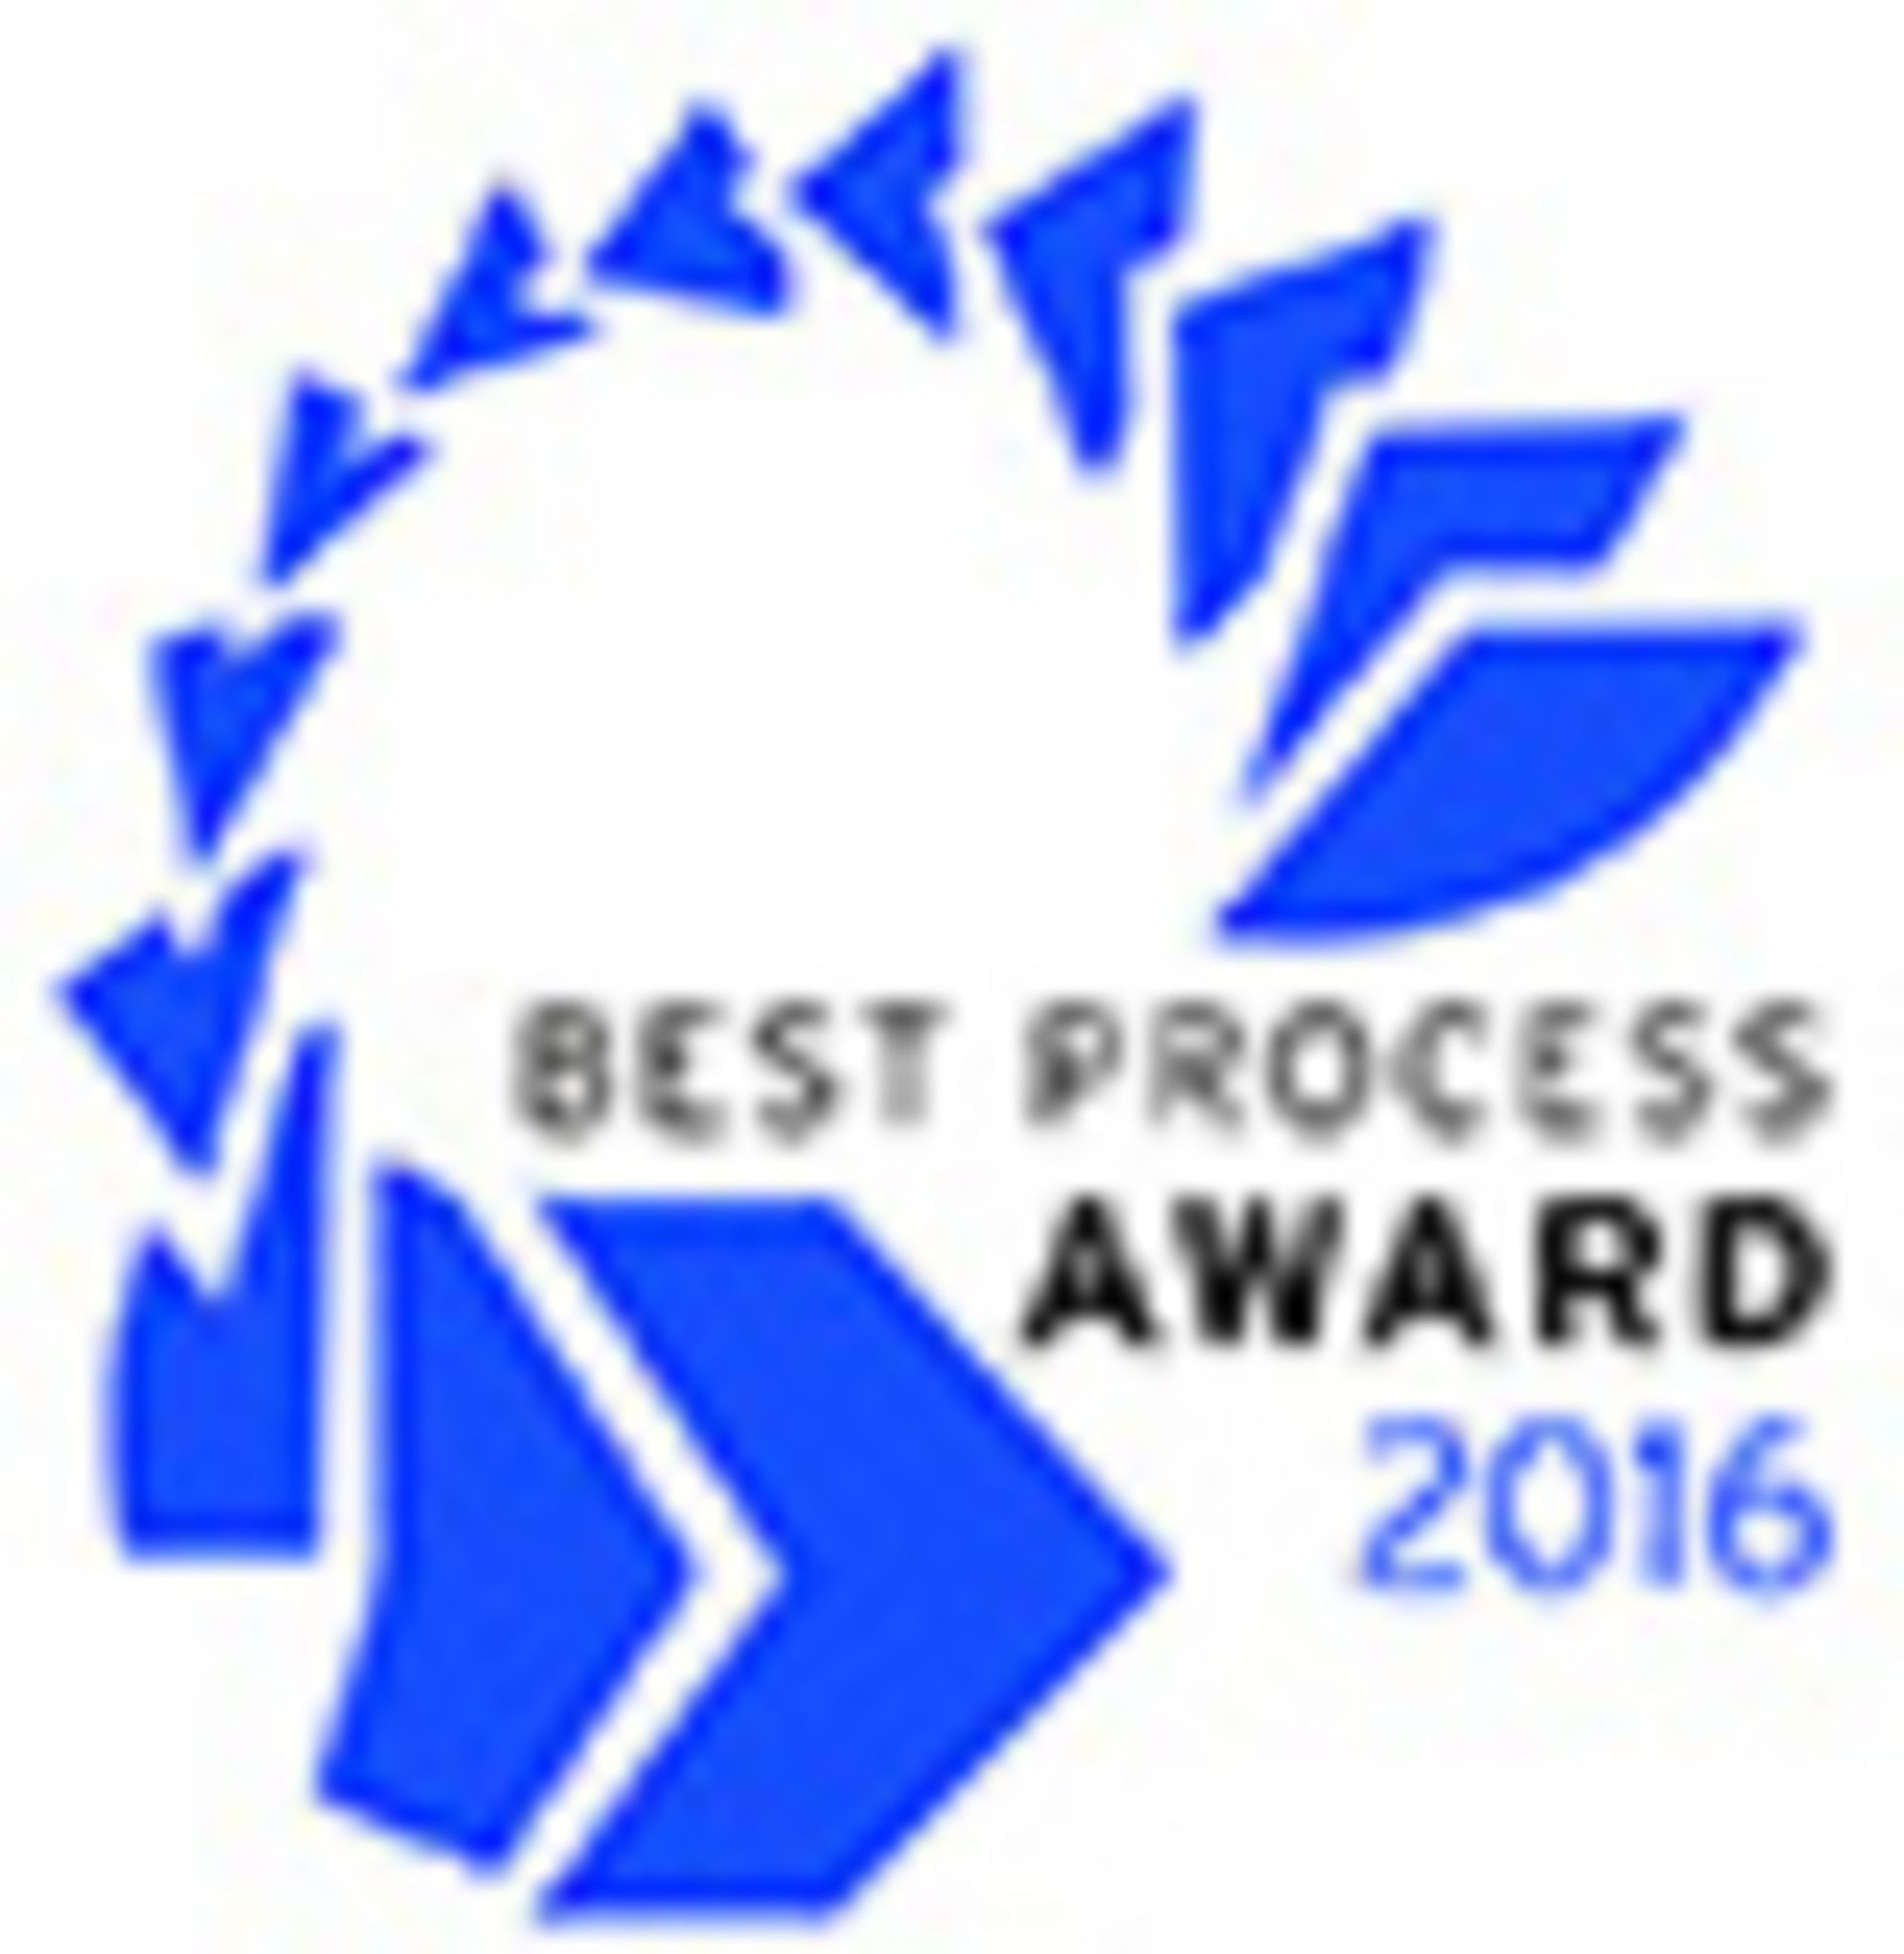 Best Process Award